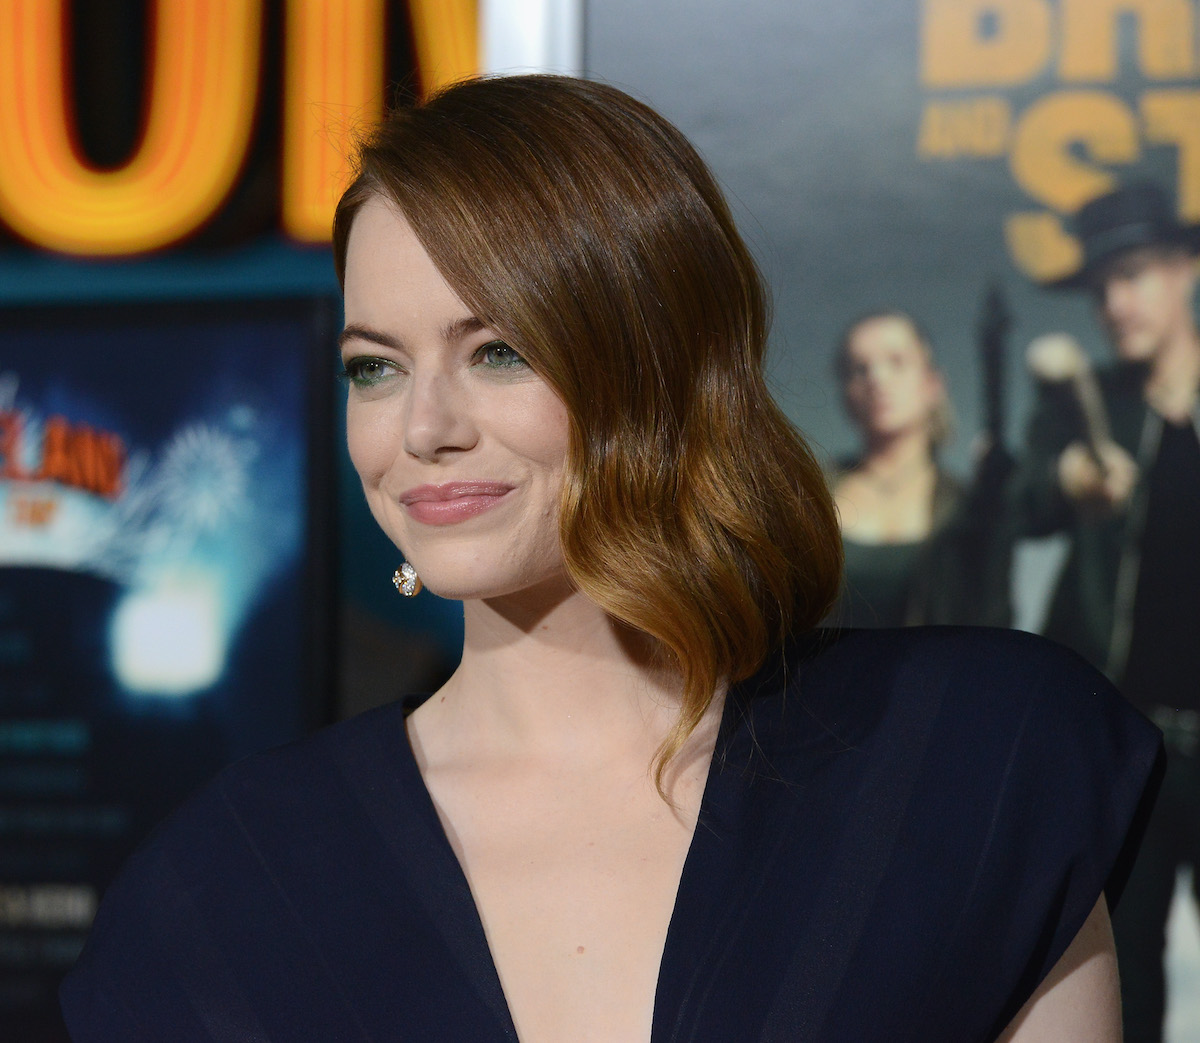 Emma Stone at the 'Zombieland: Double Tap' premiere